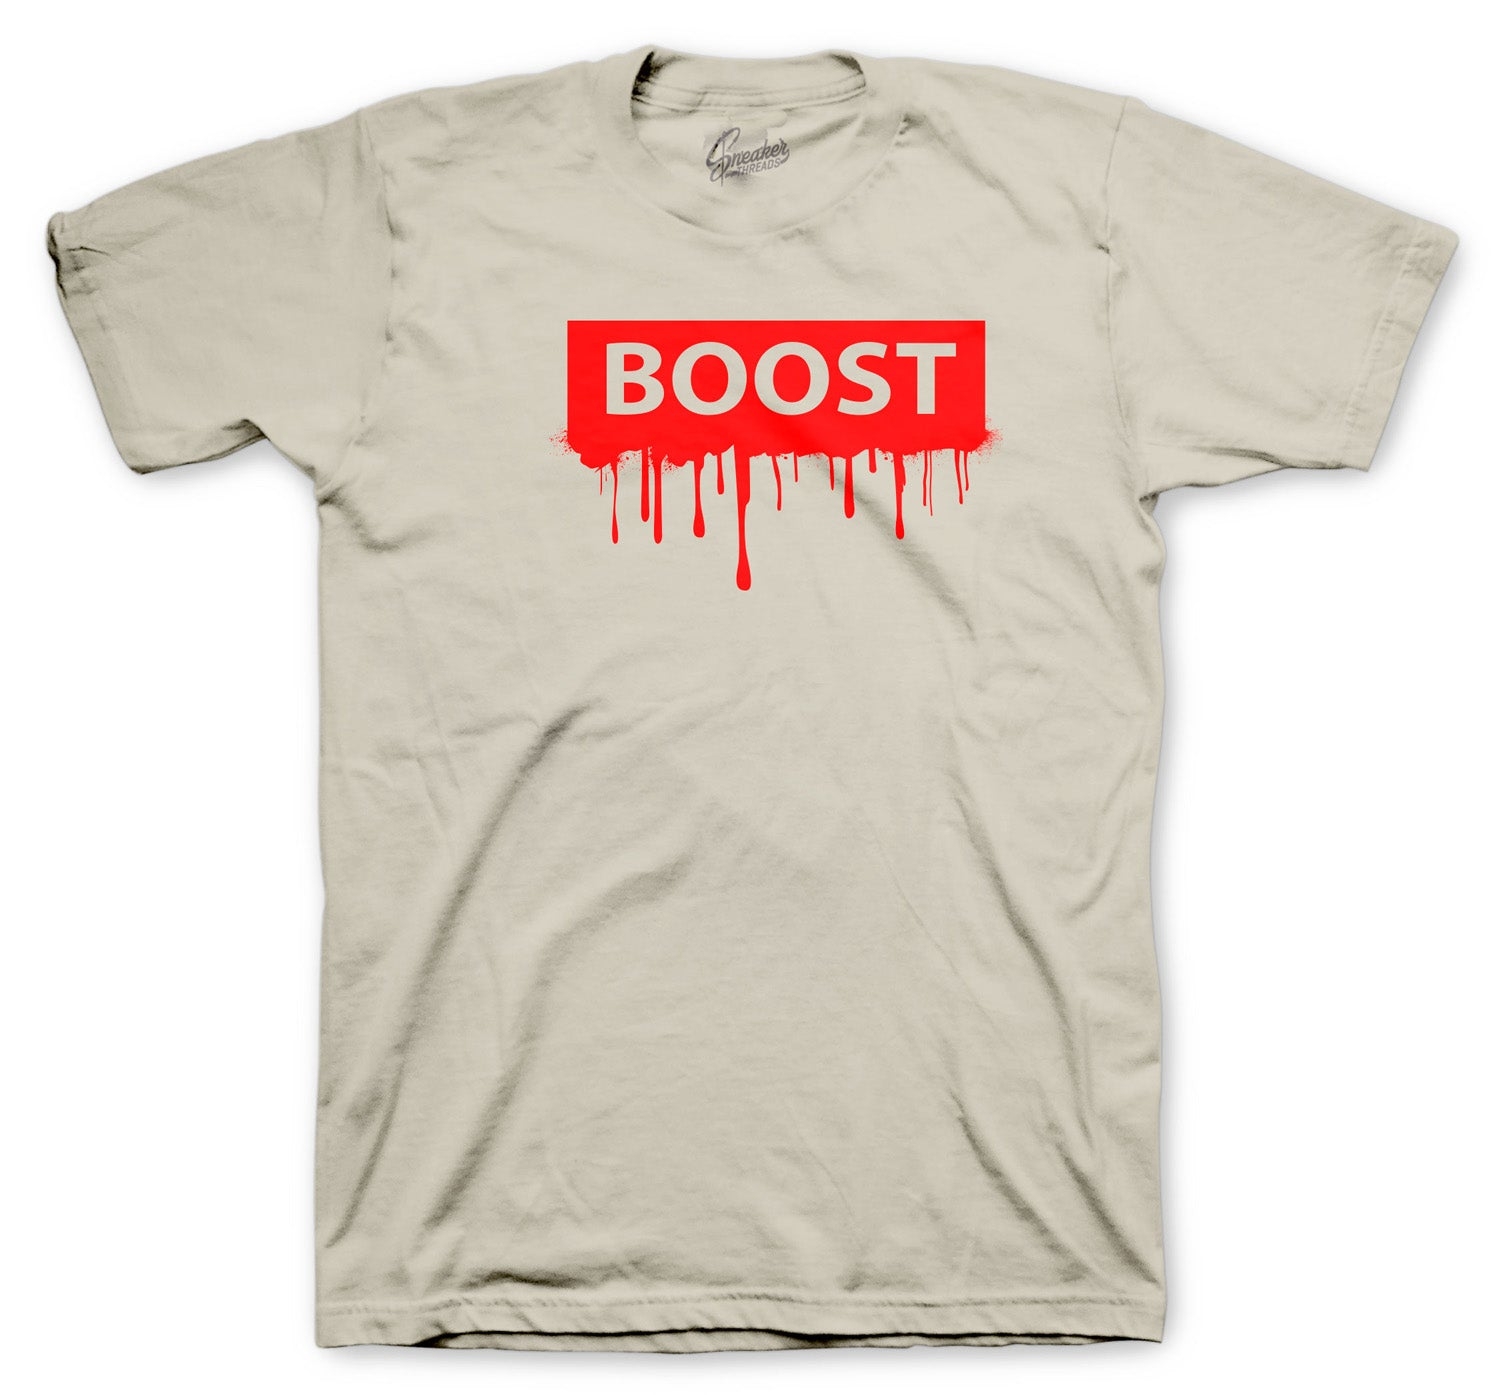 Boost Drip Yeezy gang 350 Citrin shirt collection to look fresh